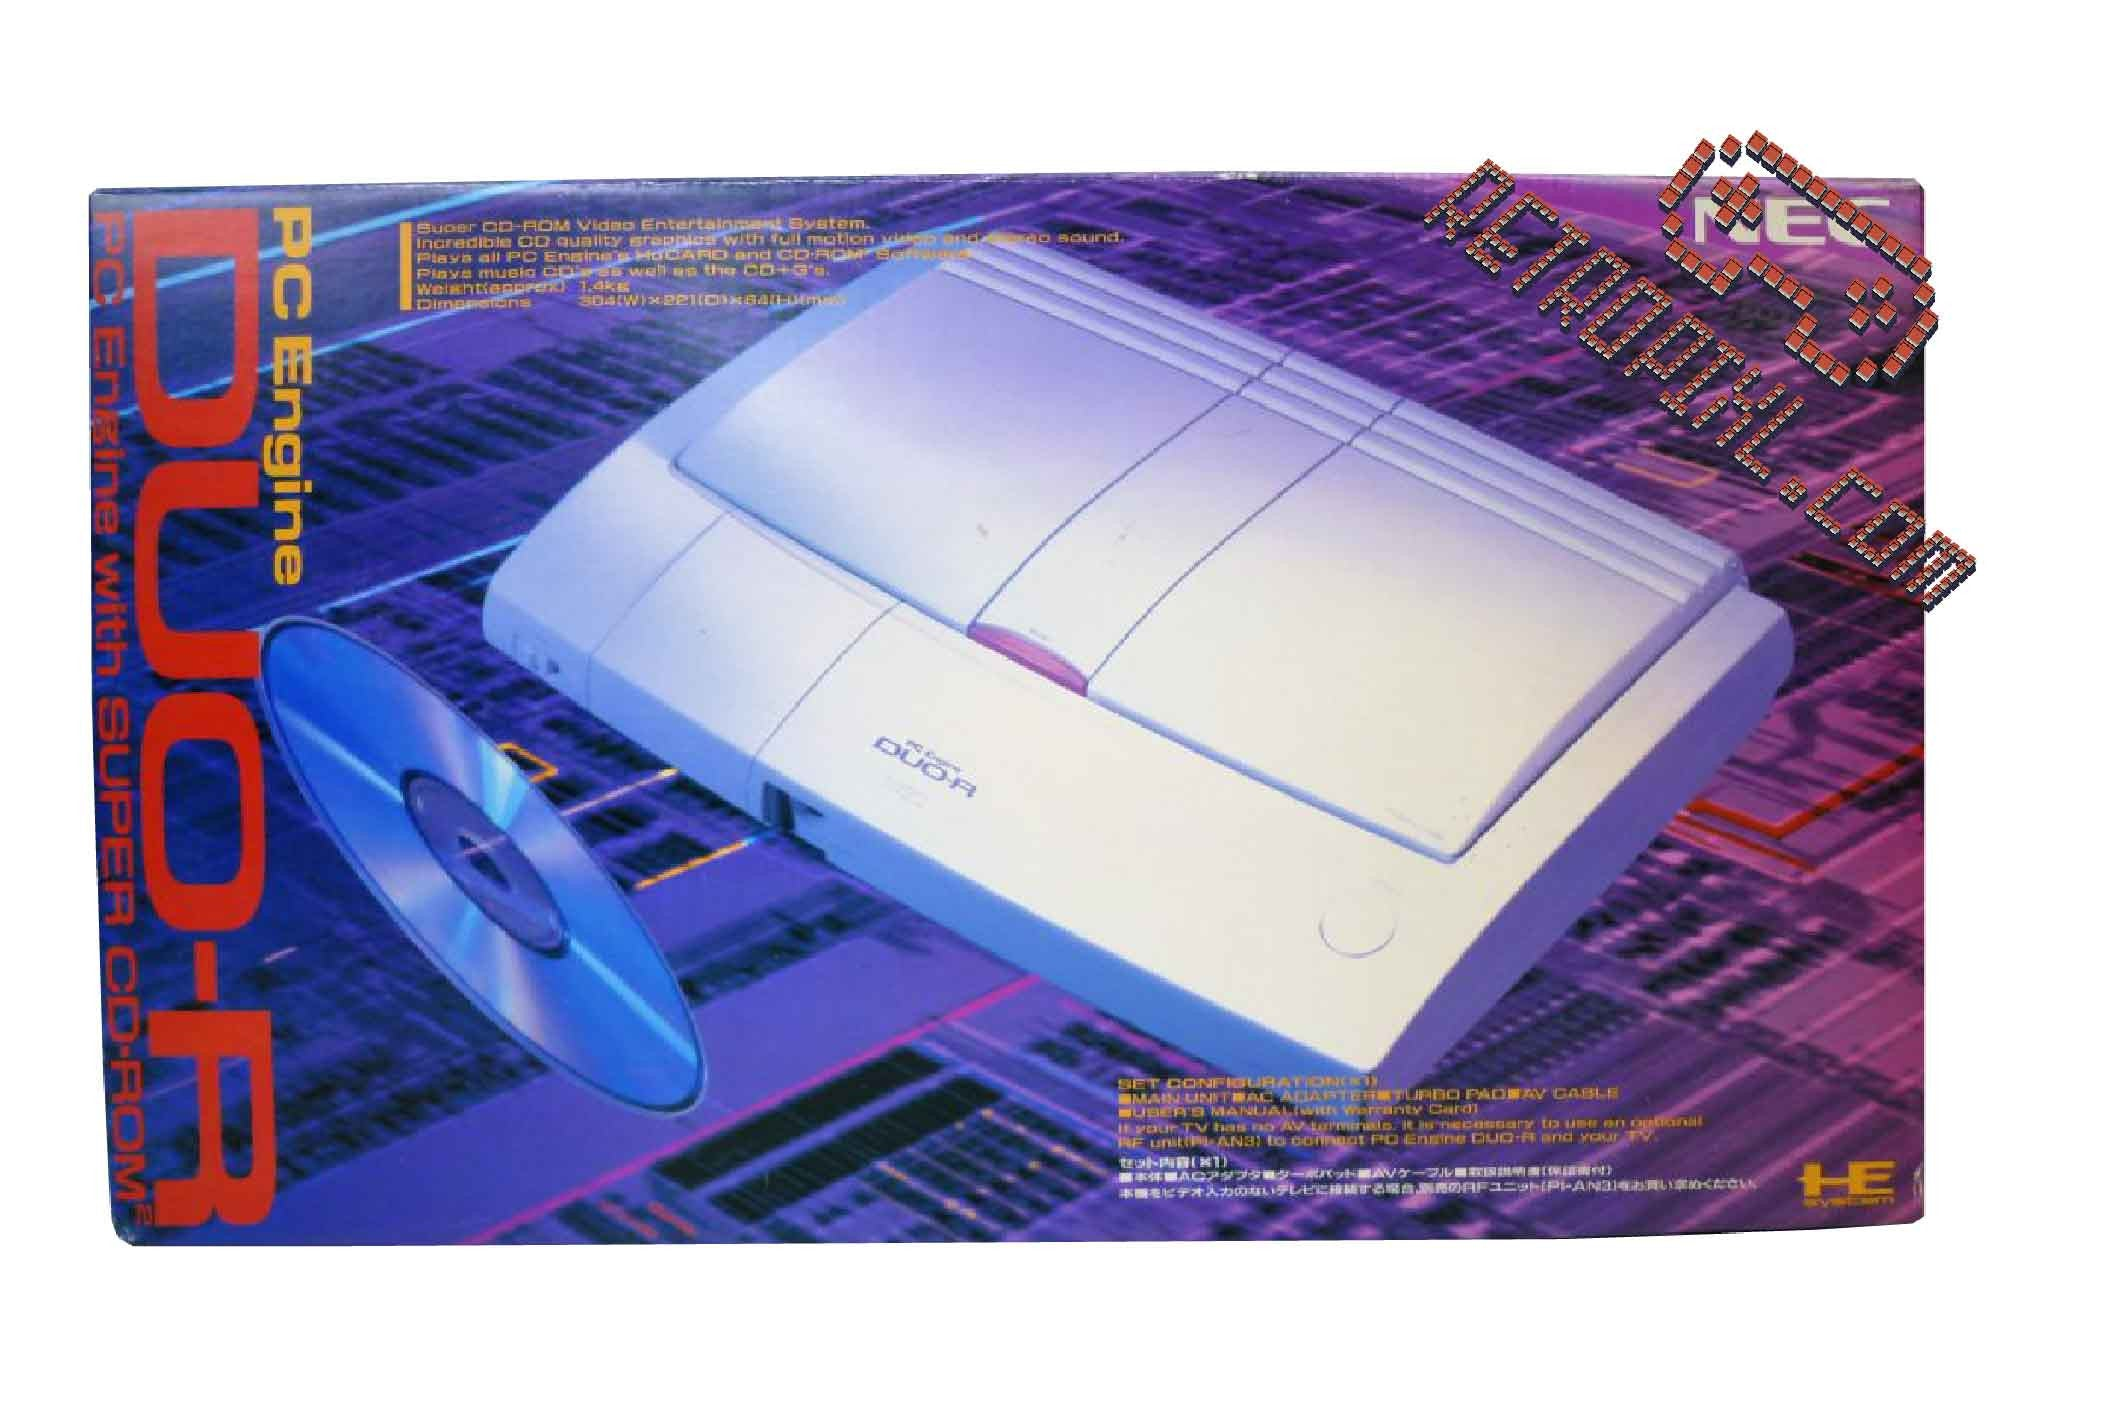 Nec Pc-Engine DUO-R